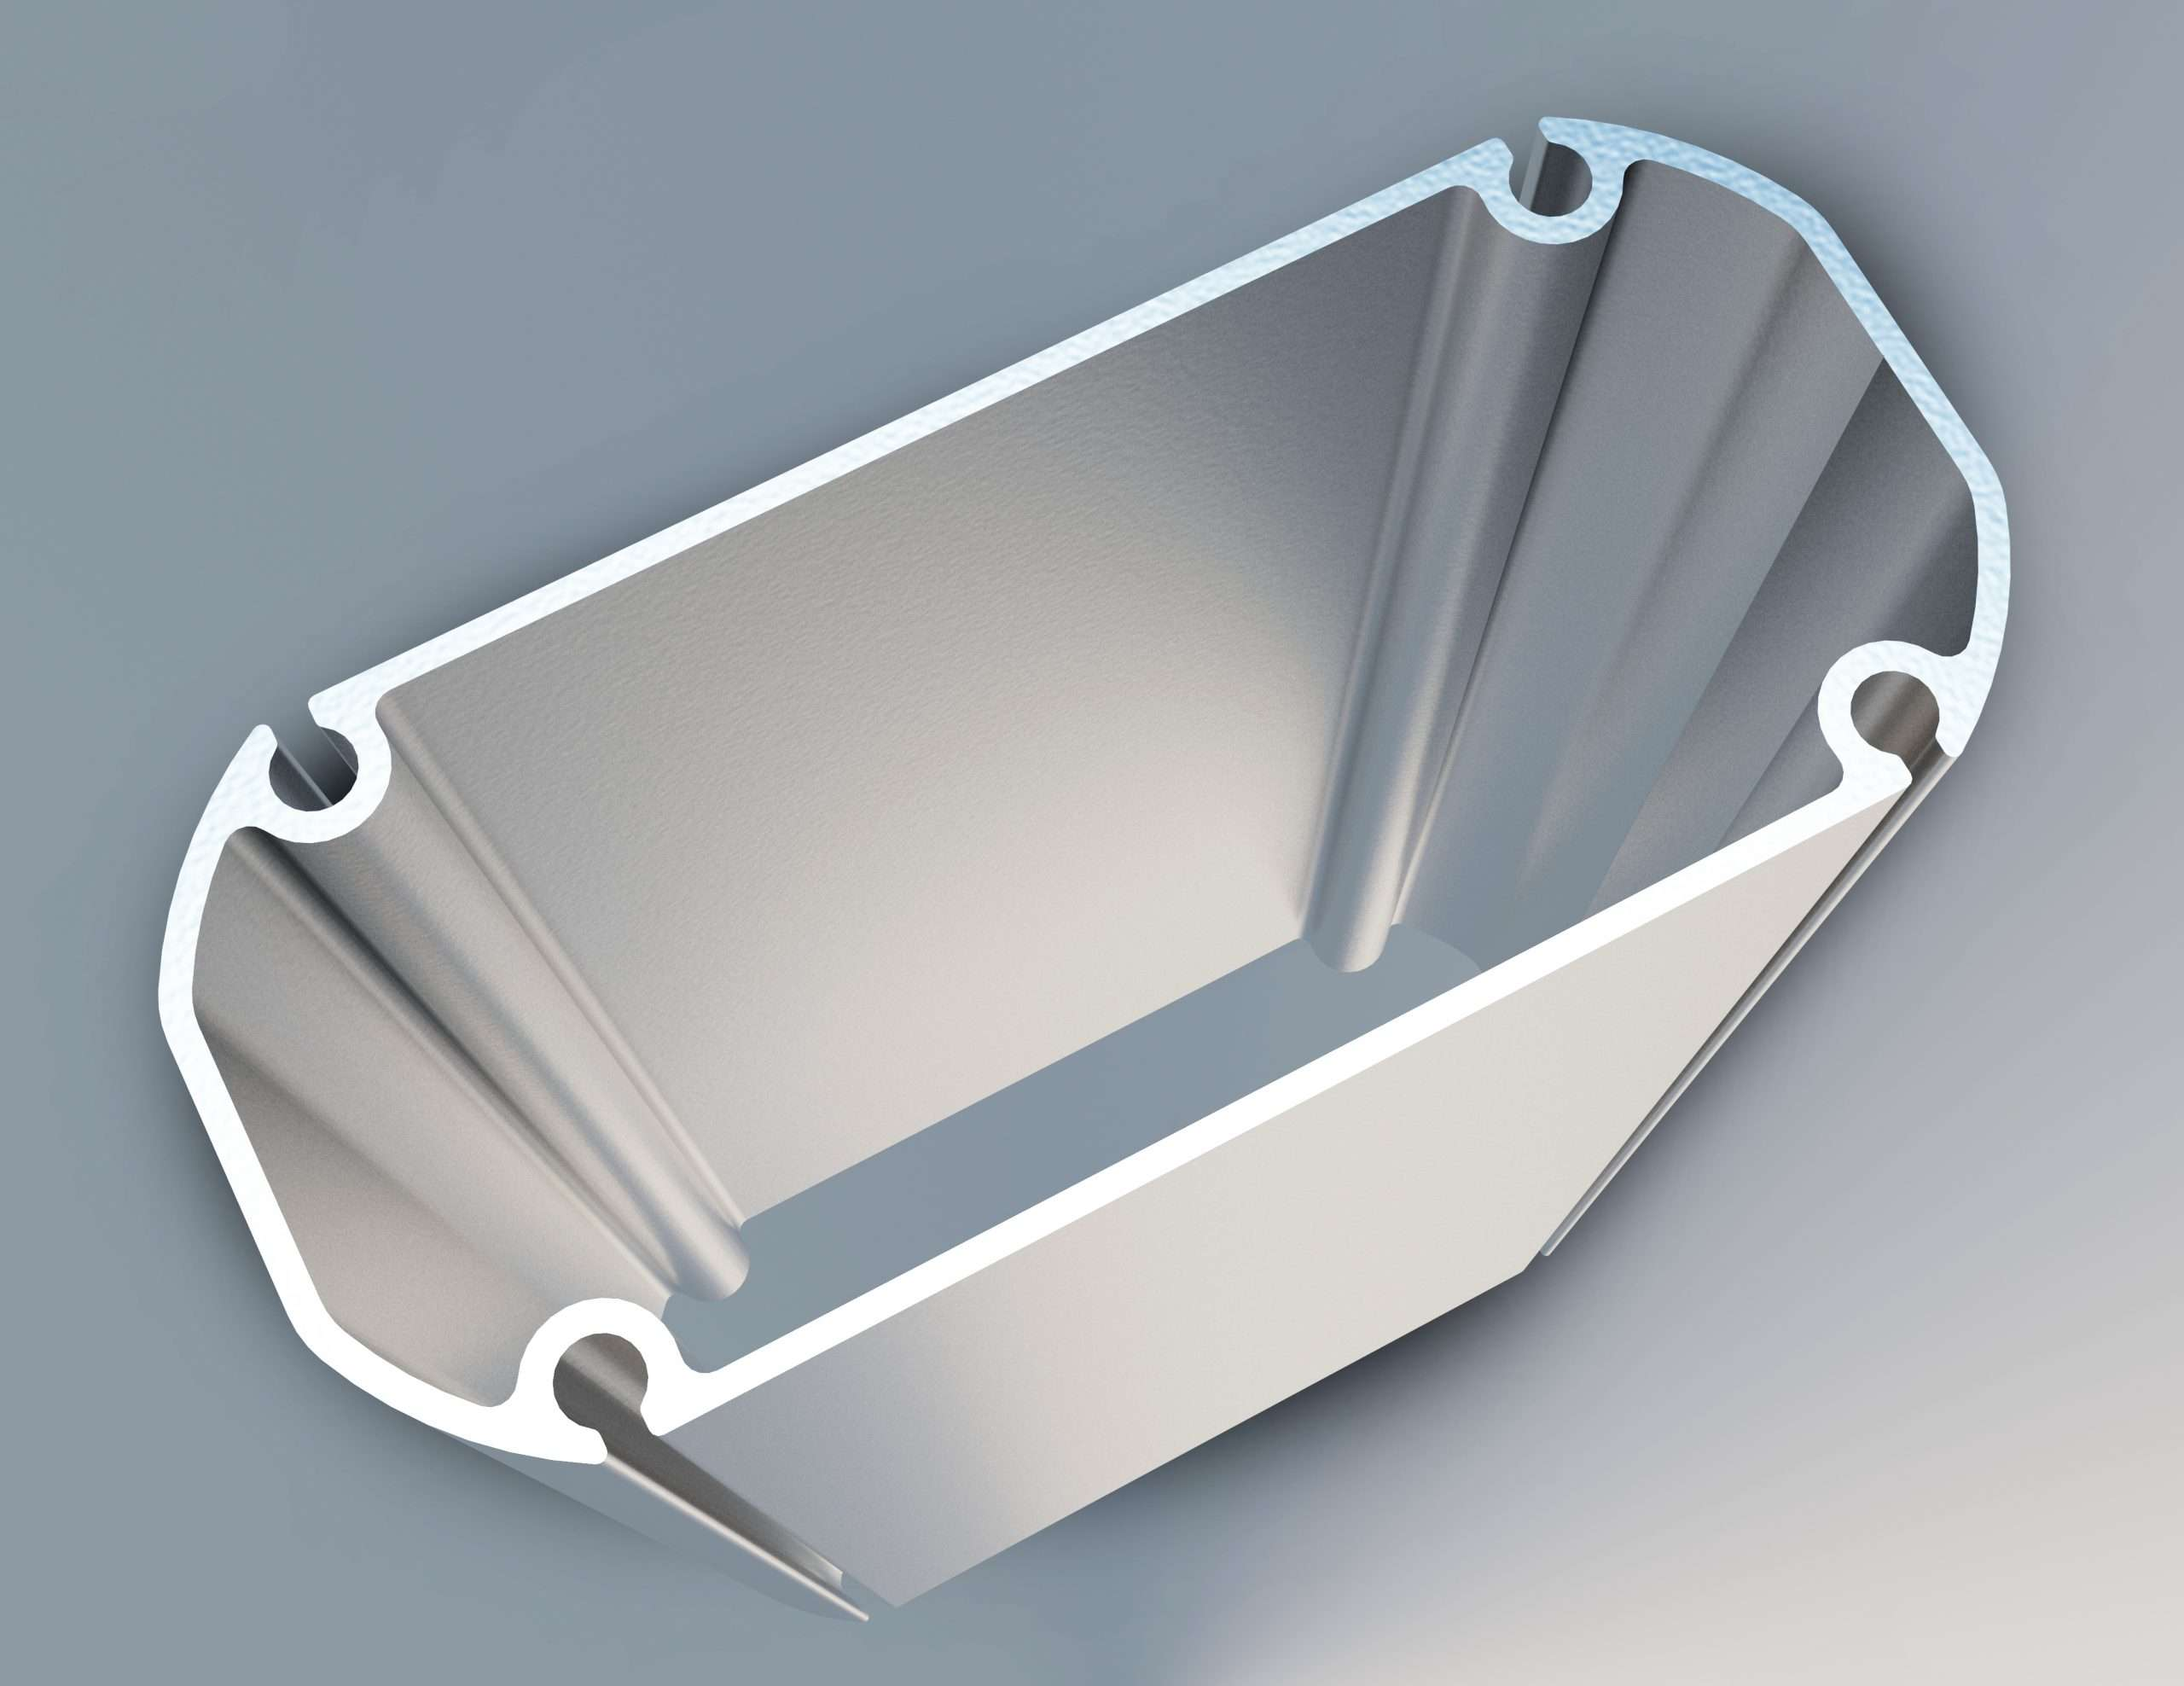 graphic render of extruded aluminum beam denoting flexibility, malleability and strength